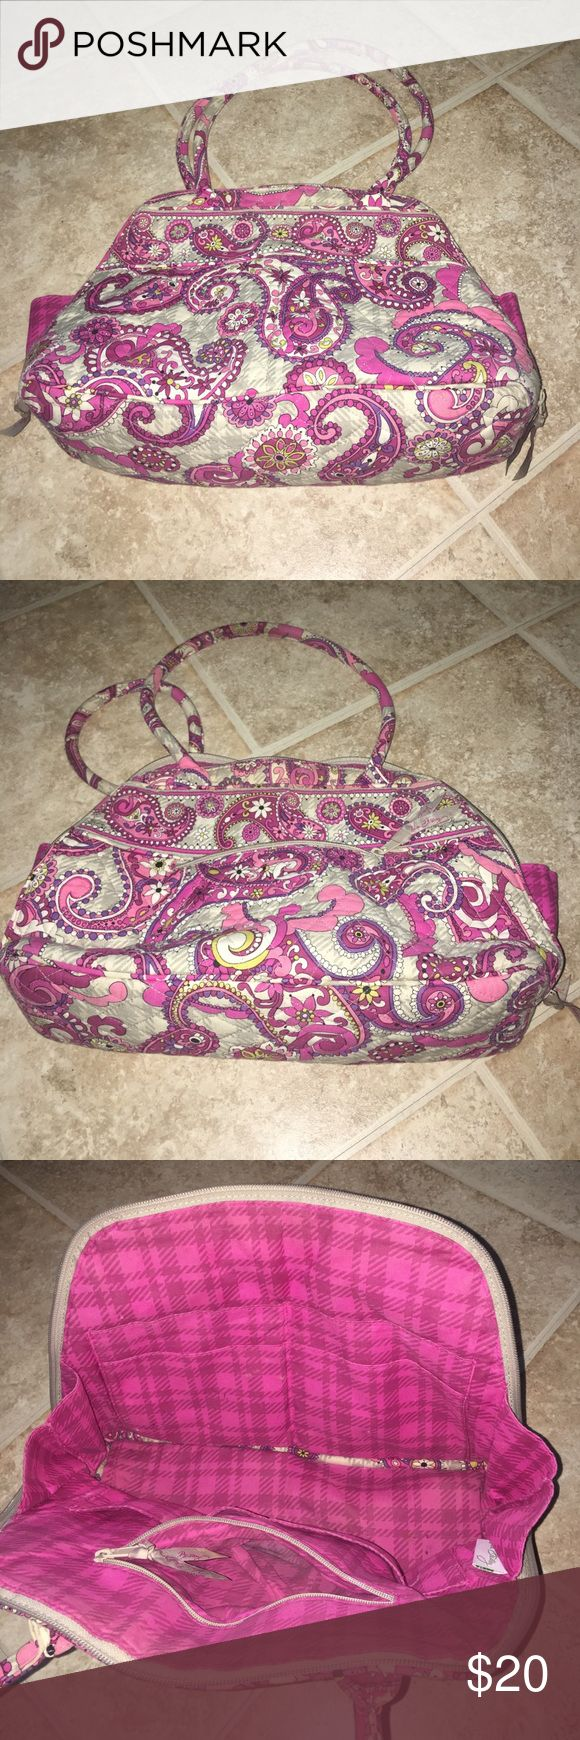 Vera Bradley Small/Medium Tote 👜 Gently used Vera Bradley tote. Contains multiple pockets on the interior and exterior. Reasonable offers accepted!!!! Vera Bradley Bags Totes